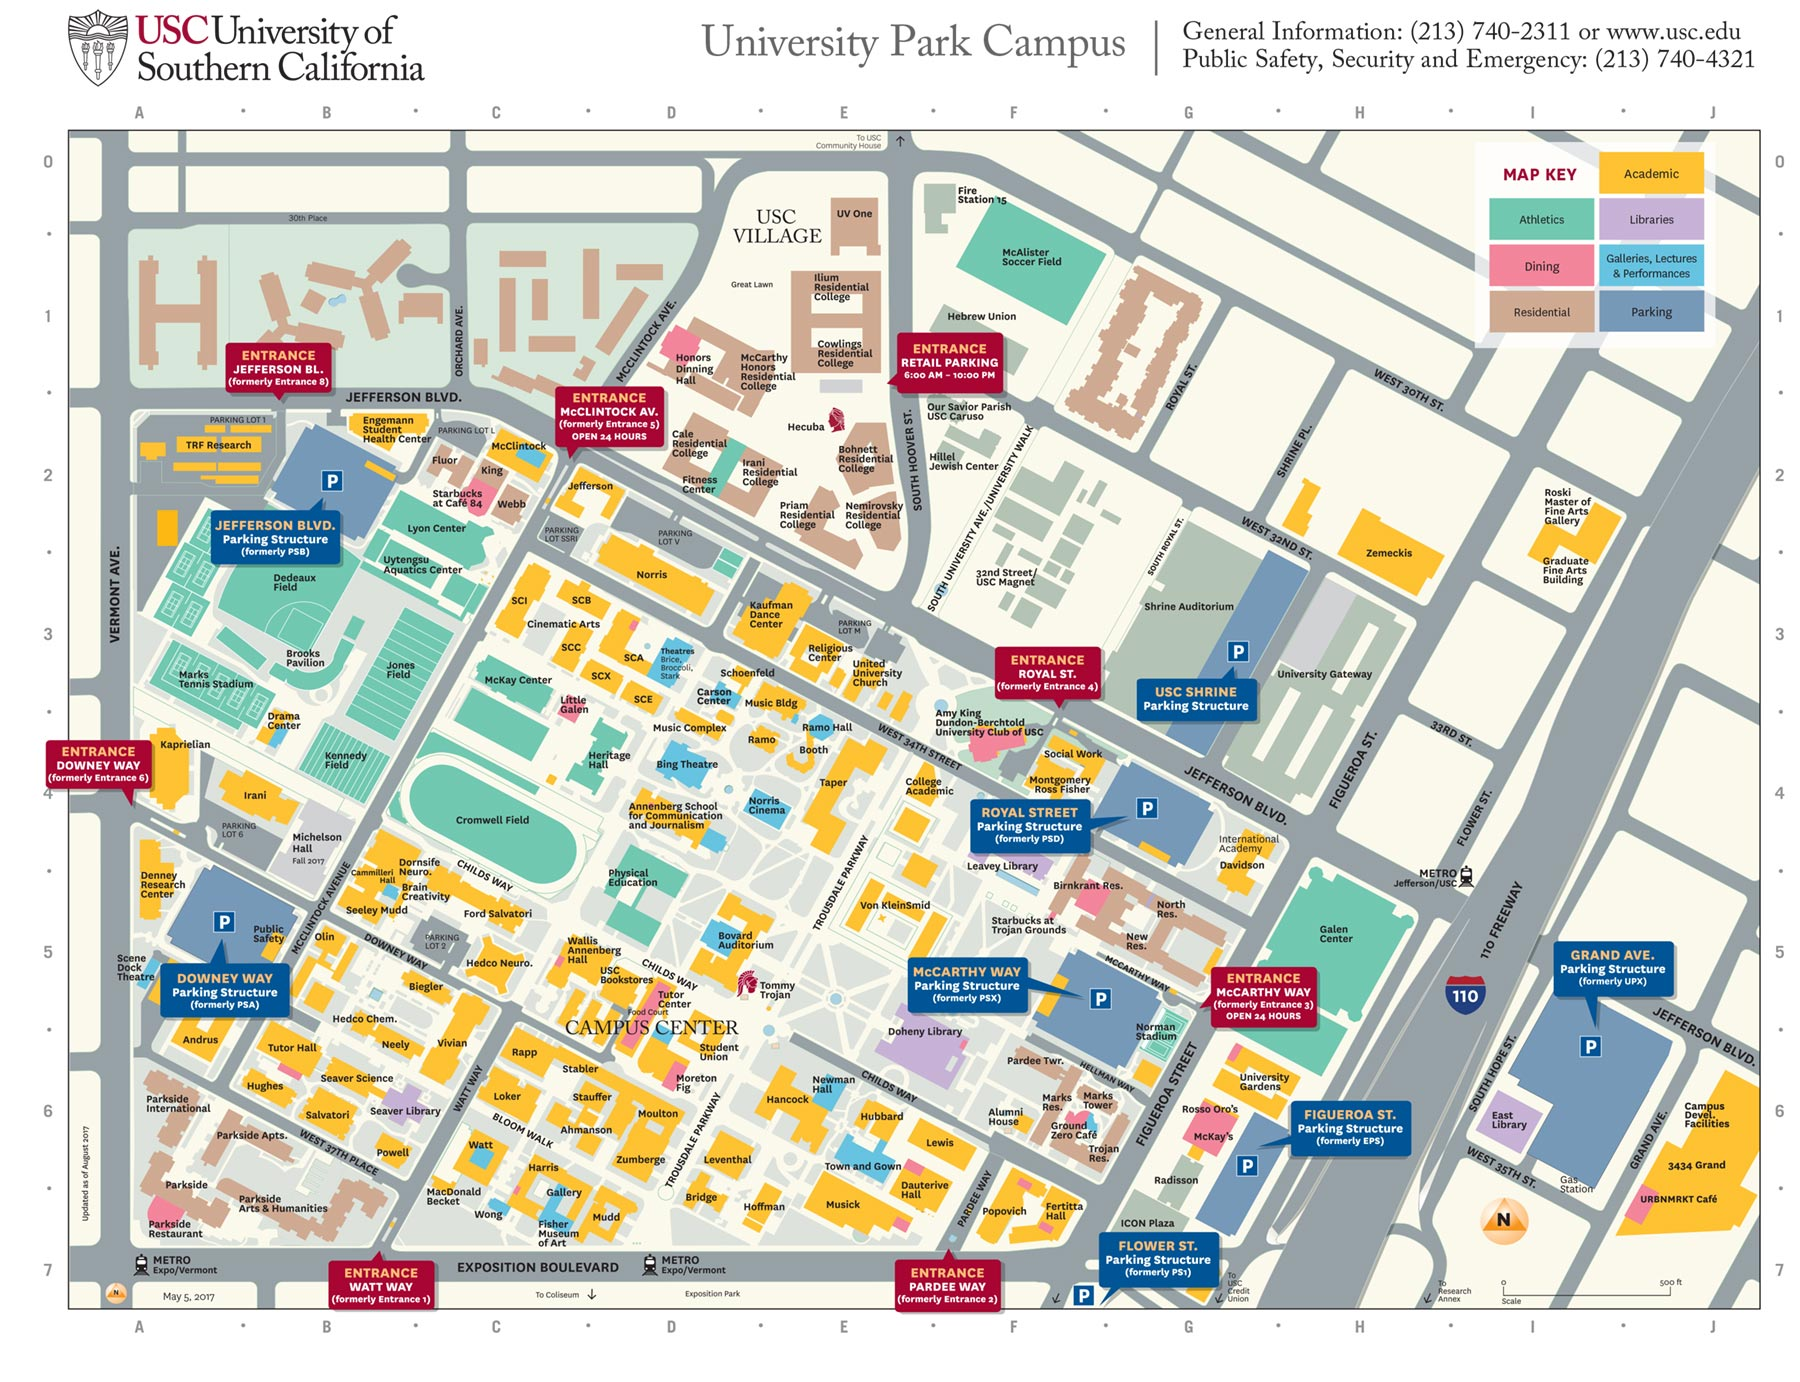 USC University Park Campus parking structures, entrances get new